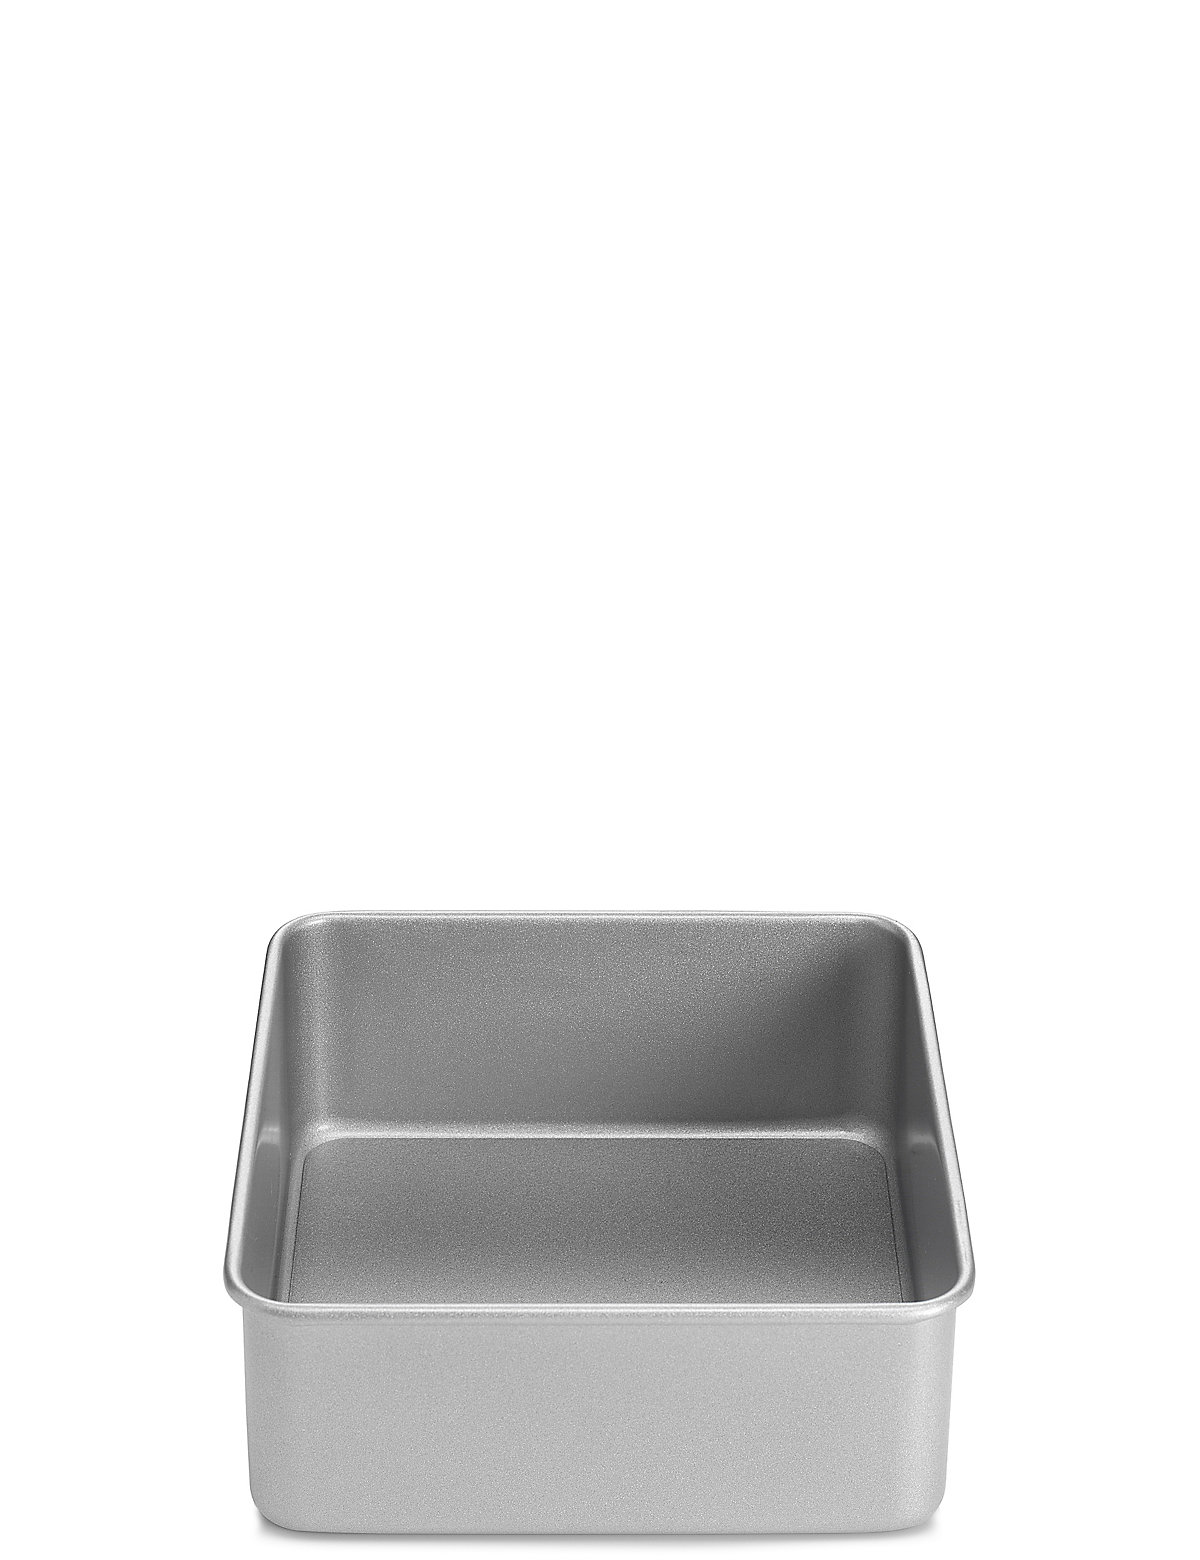 Image of 20cm Non-Stick Square Cake Tin